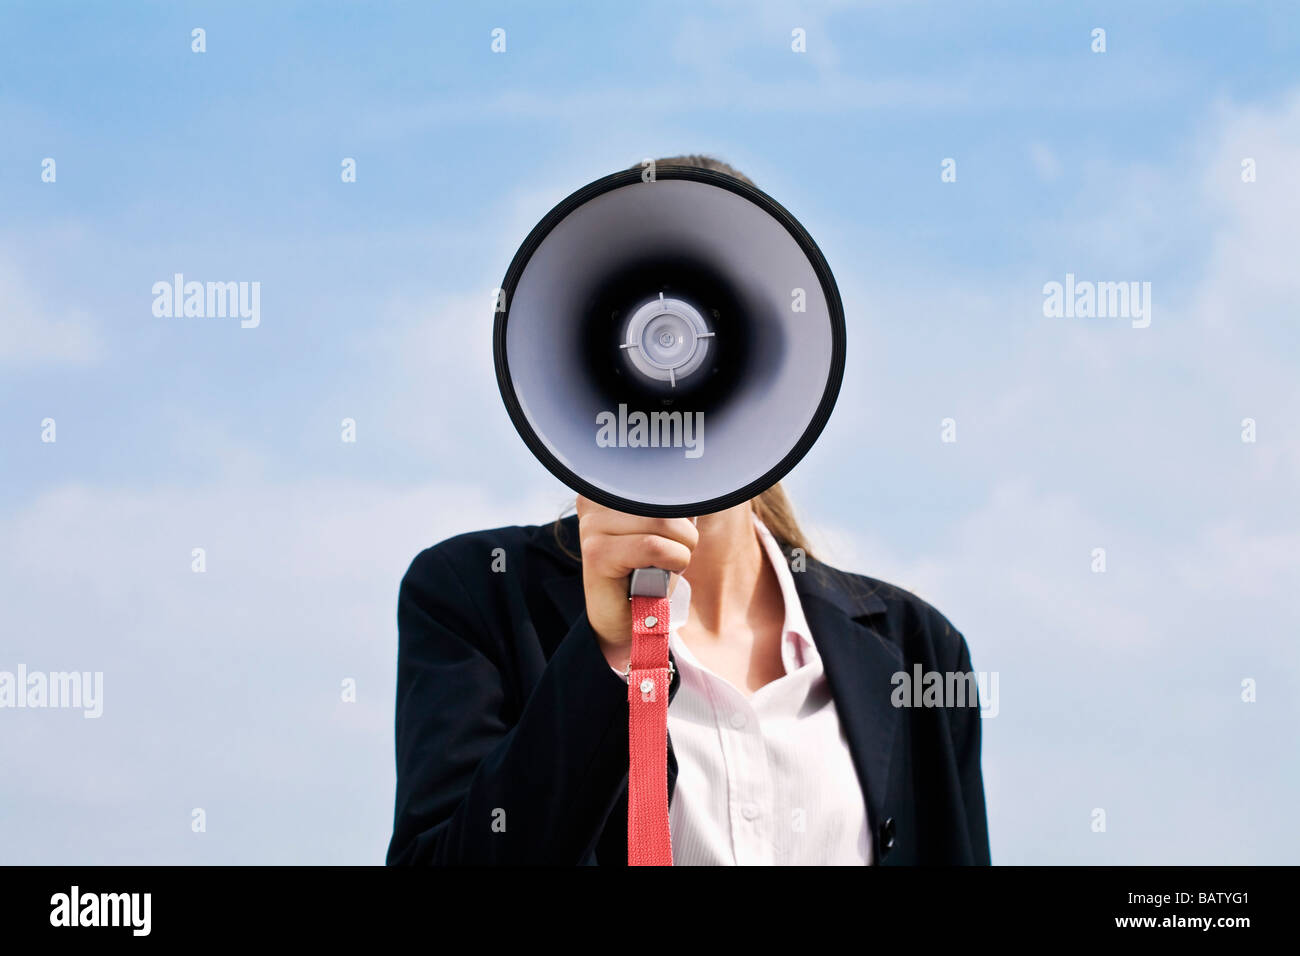 How to hide the number: Megaphone 84